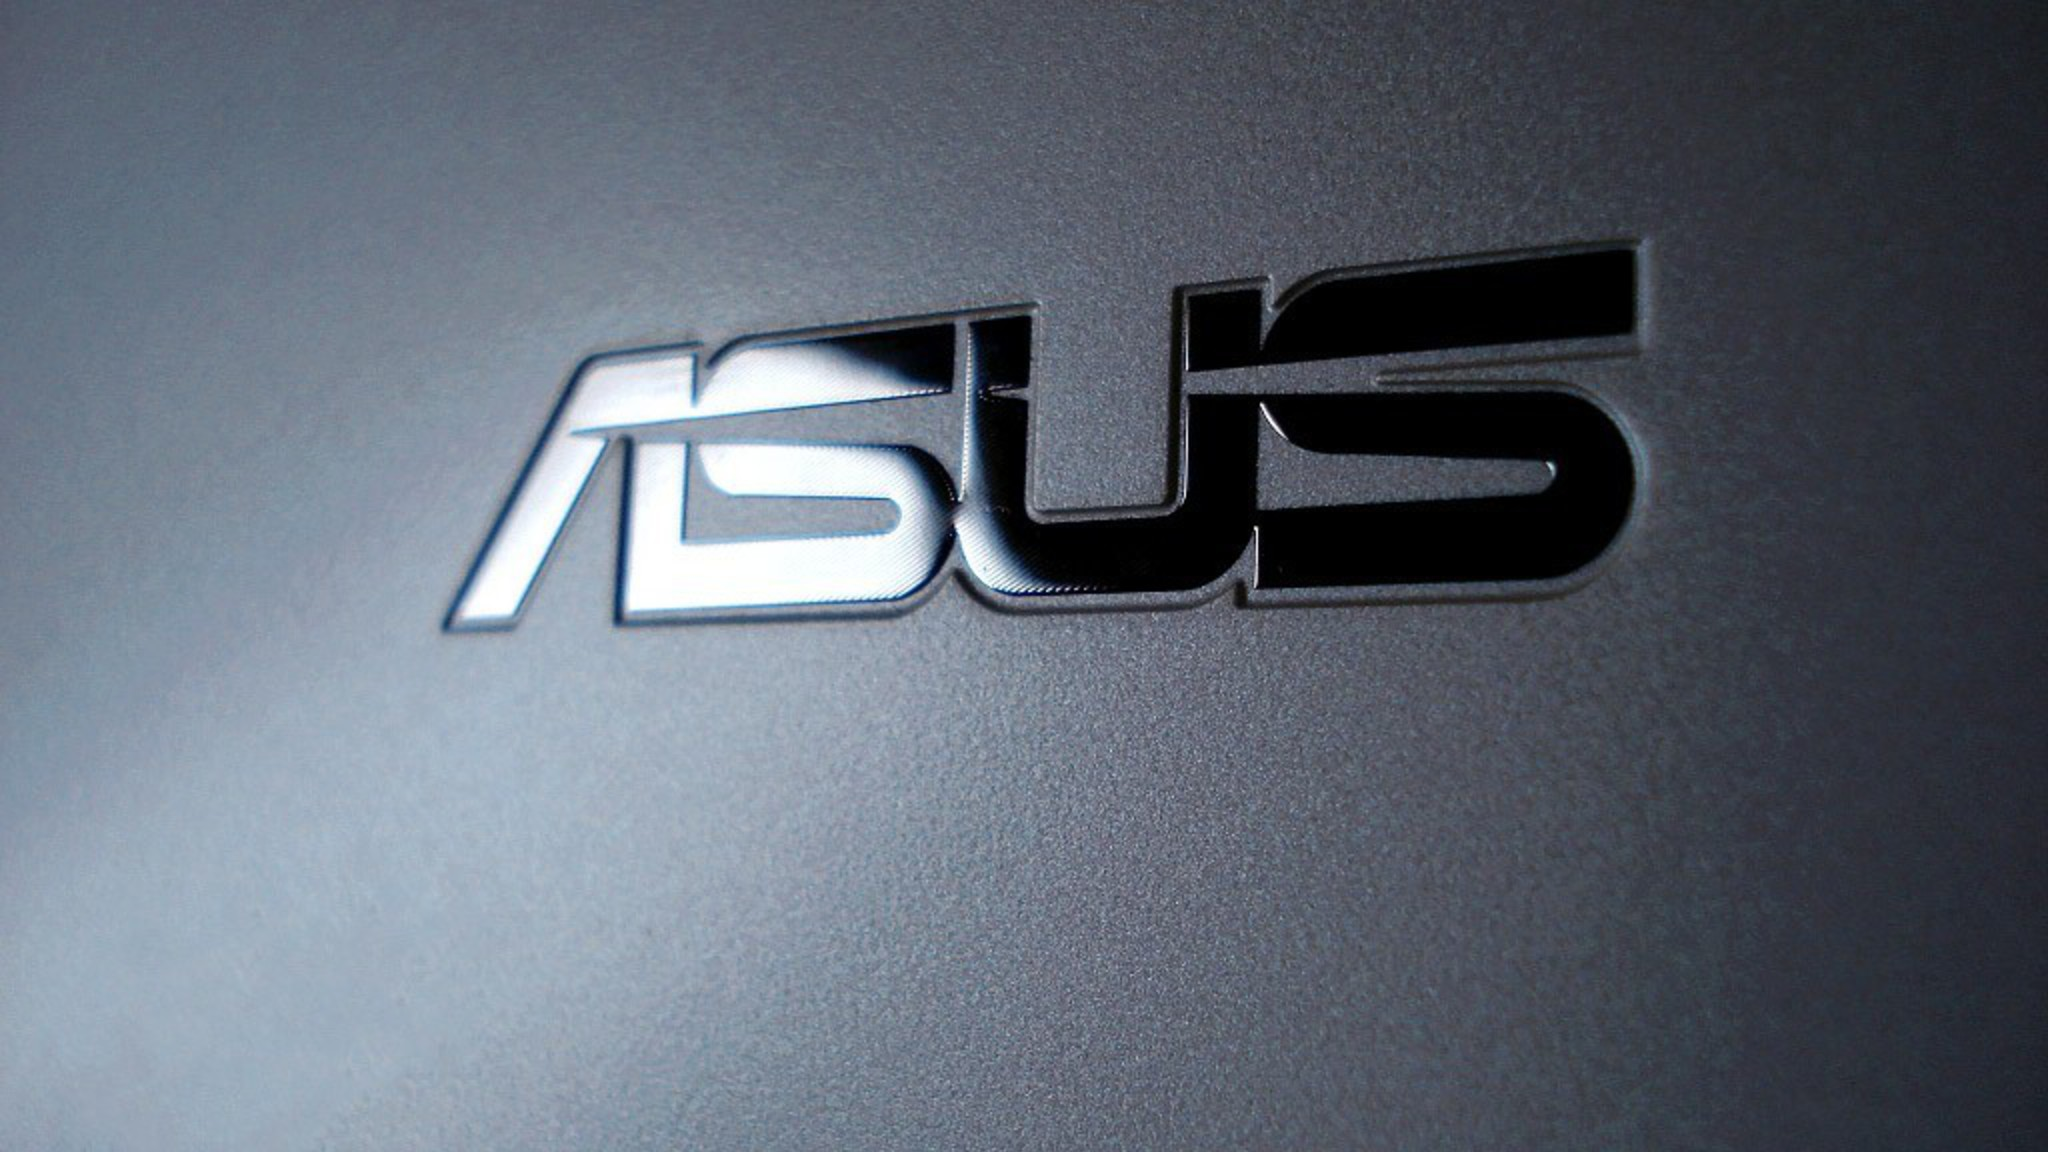 nvidia asus dj wallpaper | allwallpaper.in #422 | pc | en